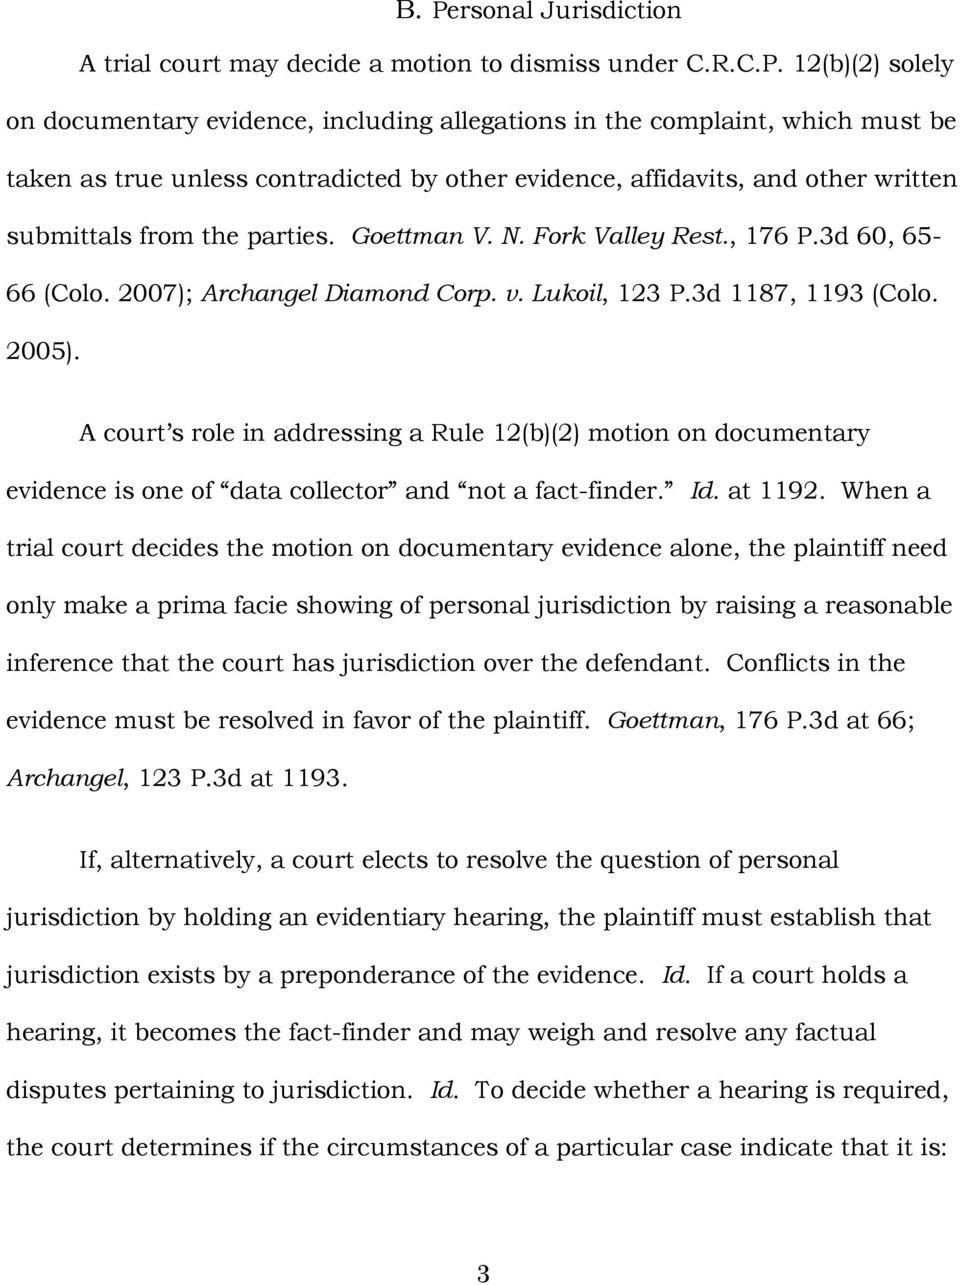 Lukoil, 123 P.3d 1187, 1193 (Colo. 2005). A court s role in addressing a Rule 12(b)(2) motion on documentary evidence is one of data collector and not a fact-finder. Id. at 1192.